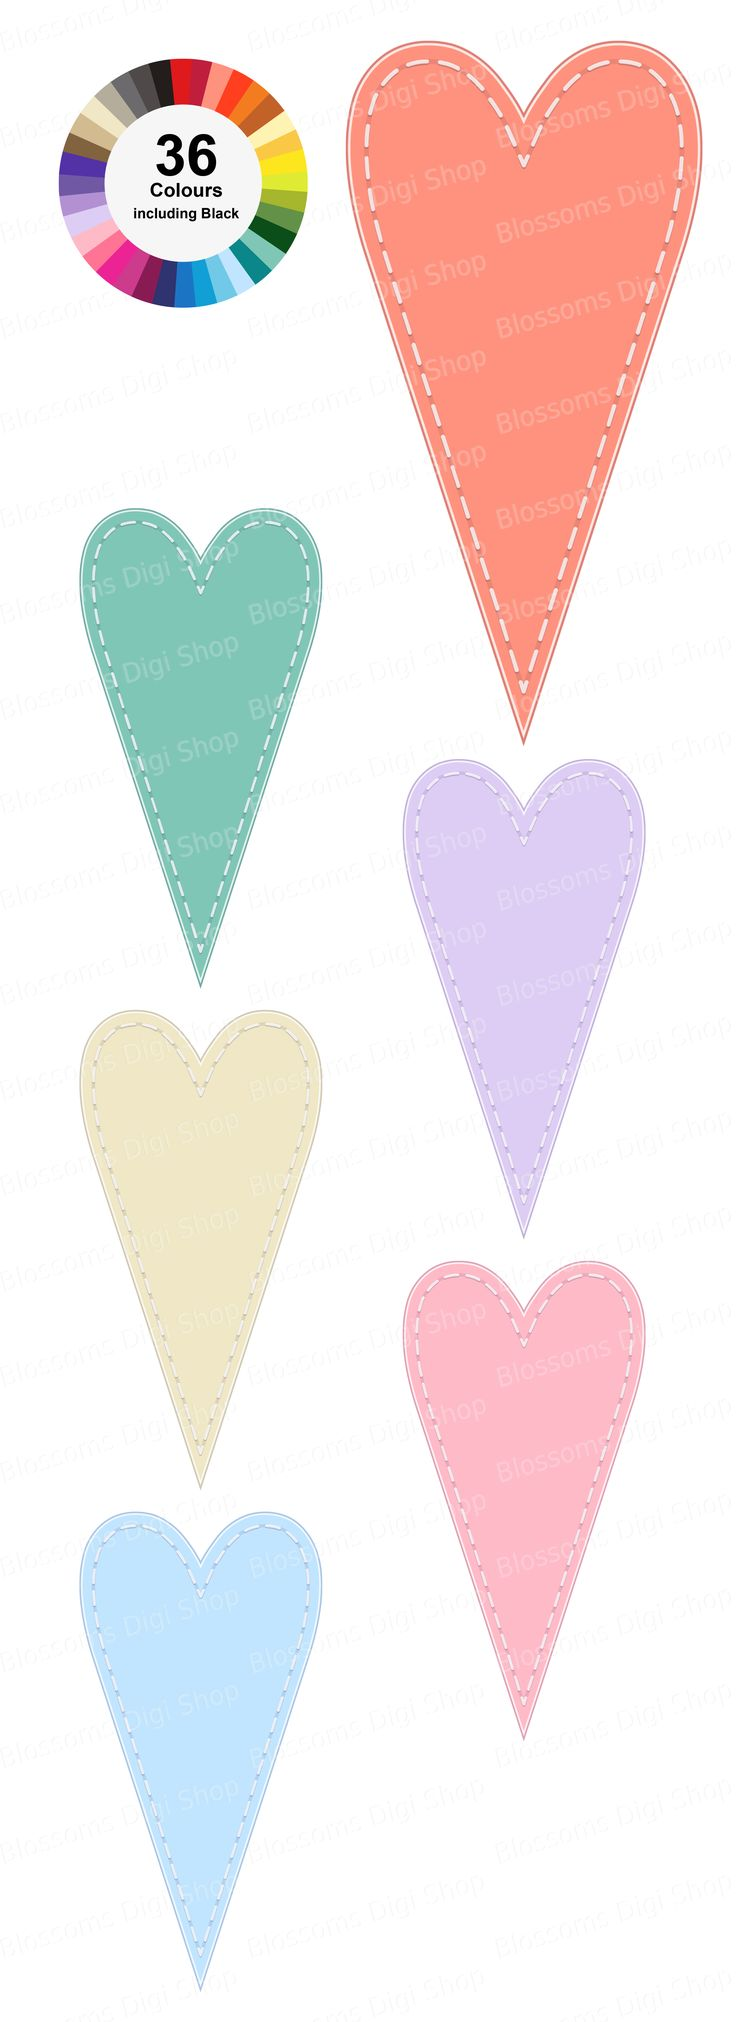 A single image clipart set in 36 colours available at Etsy for digital download. Designed for personal and commercial use.